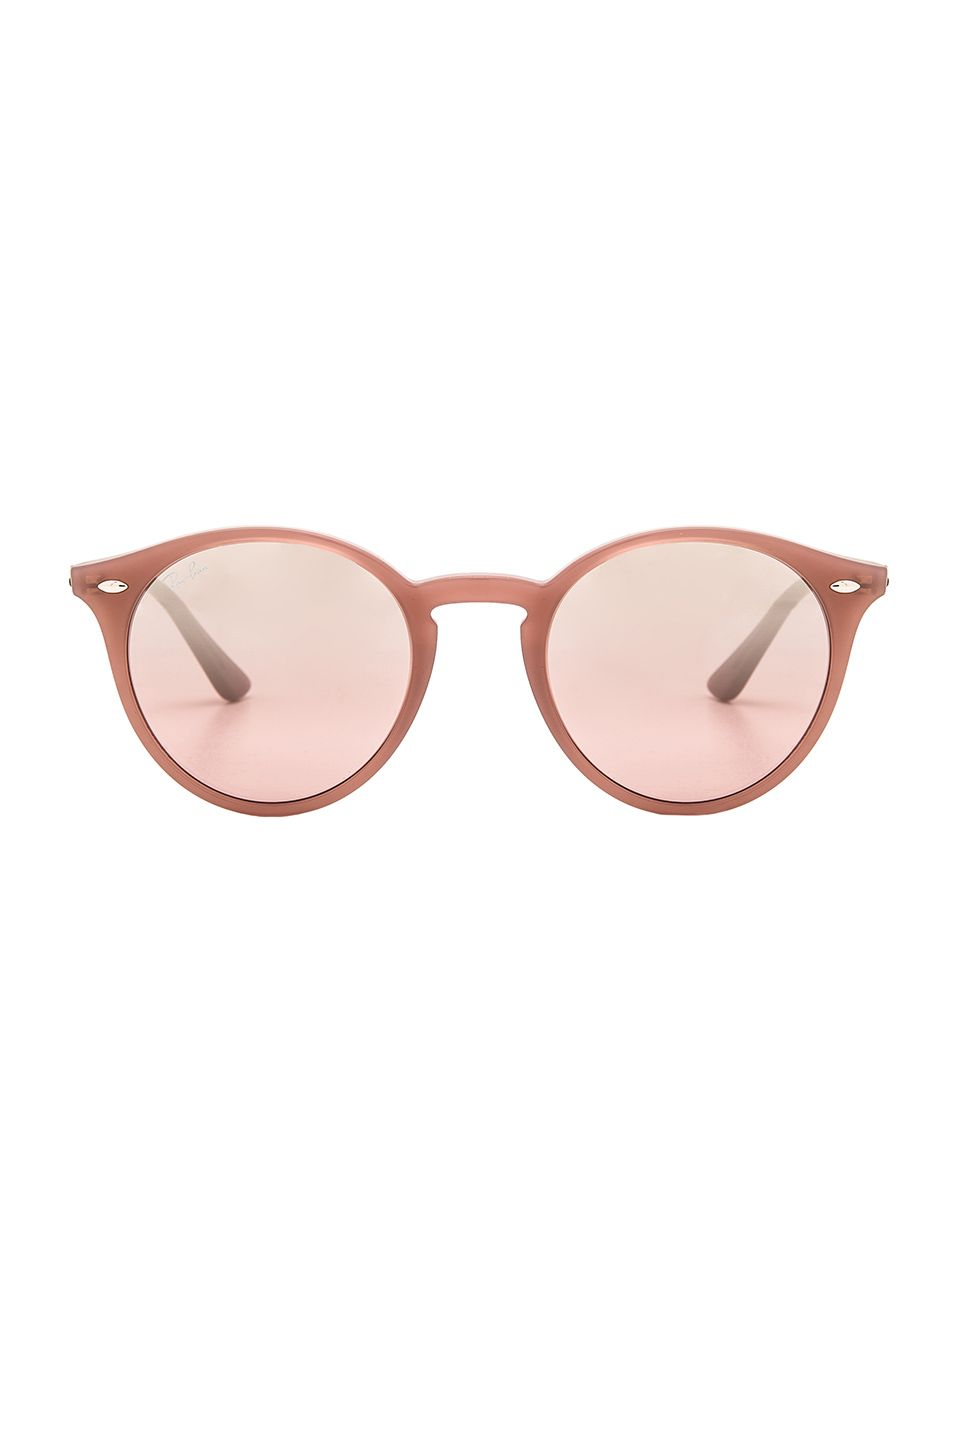 49c1b821dca89f Ray-Ban Round Classic in Opal Antique Pink Pink Mirror Silver Gradient